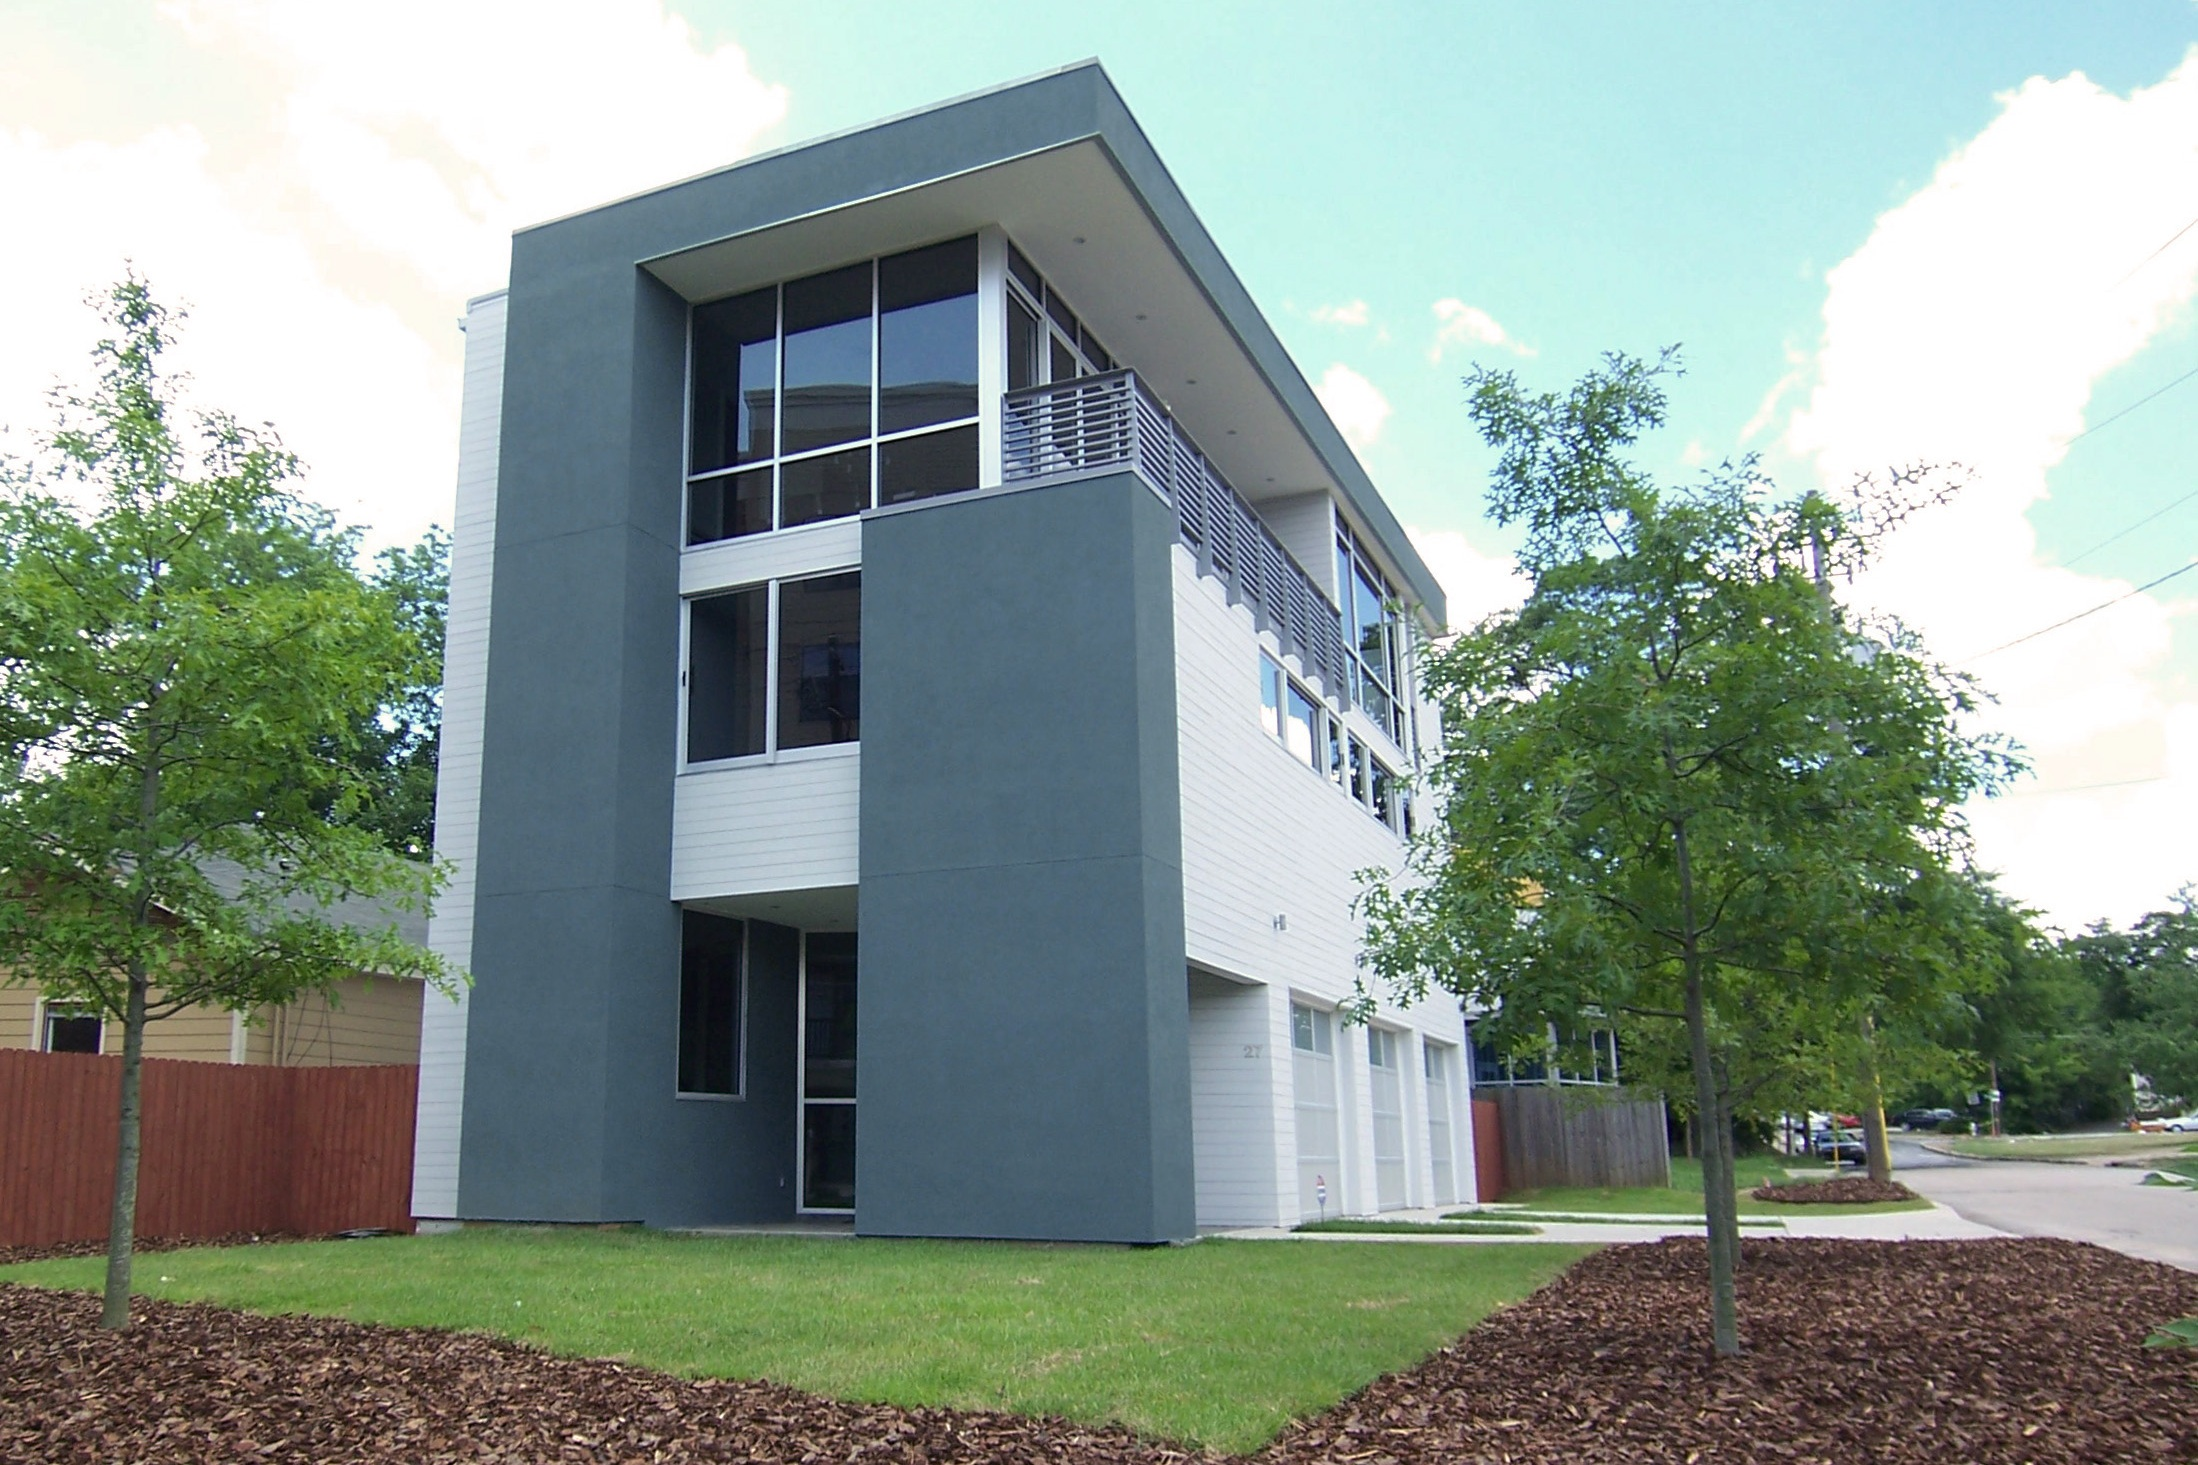 New home near the MLK center and Auburn district in Atlanta. The floor plan is reversed with the main living floor on top to maximize views, the bedrooms are on the second level and the street level contains a three car garage and foyer. A dumbwaiter was installed to carry groceries, etc up to the third floor from the garage.